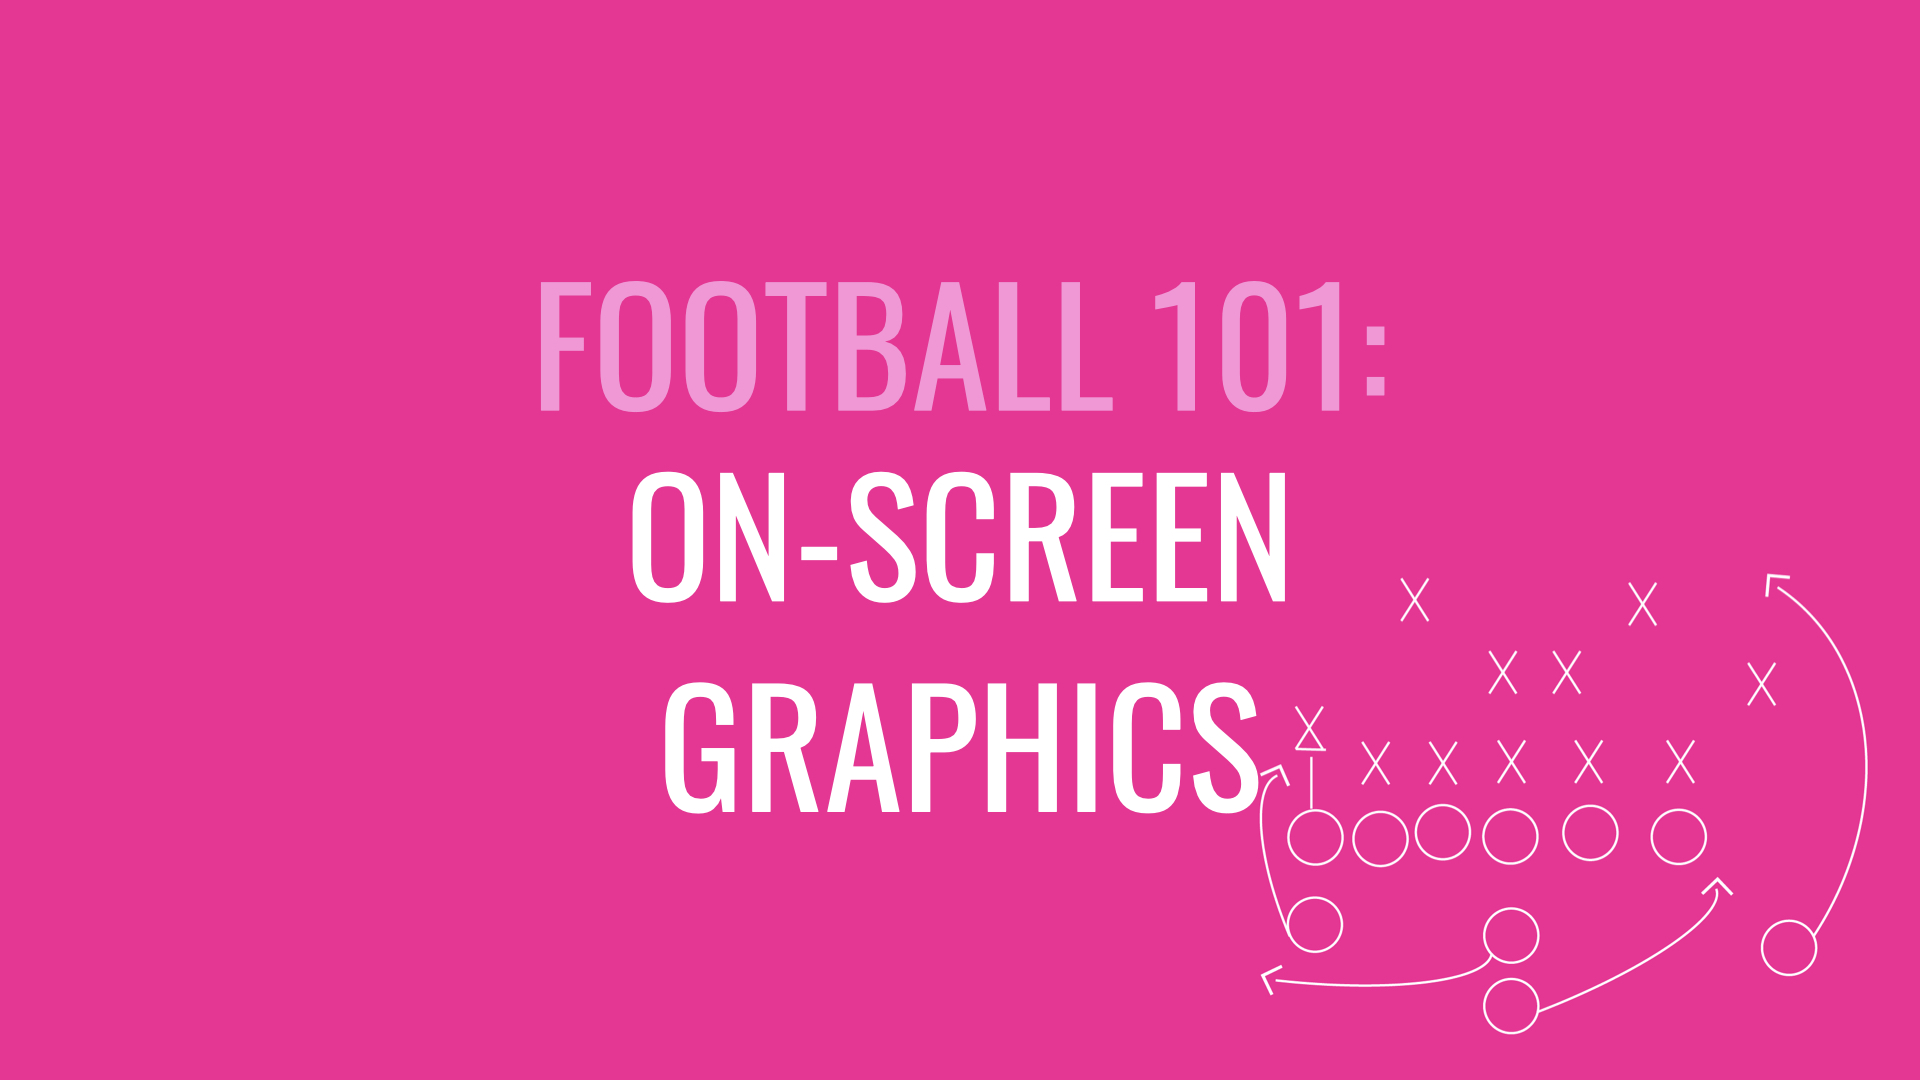 On-screen graphics